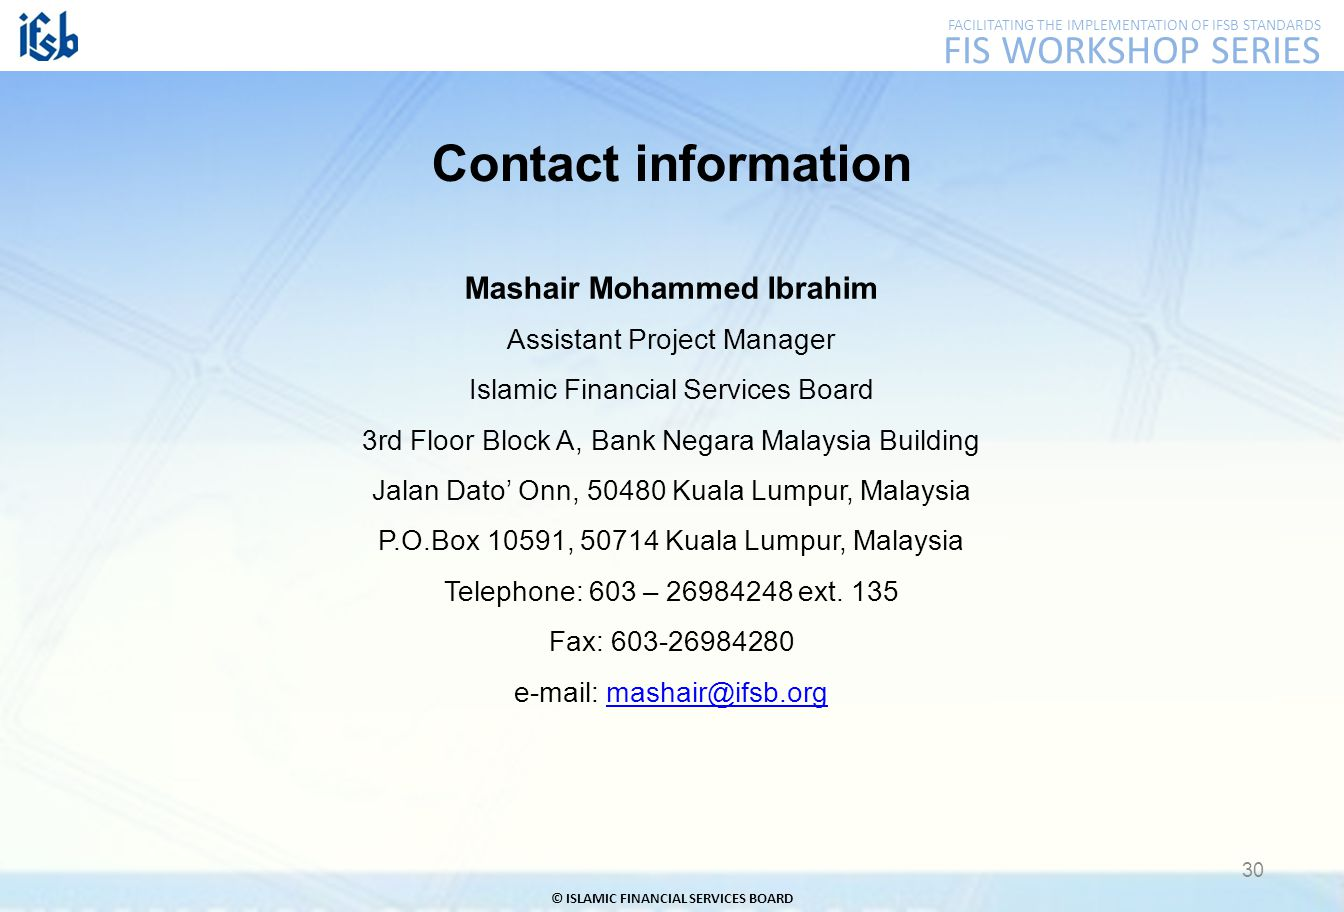 FACILITATING THE IMPLEMENTATION OF IFSB STANDARDS FIS WORKSHOP SERIES © ISLAMIC FINANCIAL SERVICES BOARD 30 Mashair Mohammed Ibrahim Assistant Project Manager Islamic Financial Services Board 3rd Floor Block A, Bank Negara Malaysia Building Jalan Dato' Onn, 50480 Kuala Lumpur, Malaysia P.O.Box 10591, 50714 Kuala Lumpur, Malaysia Telephone: 603 – 26984248 ext.